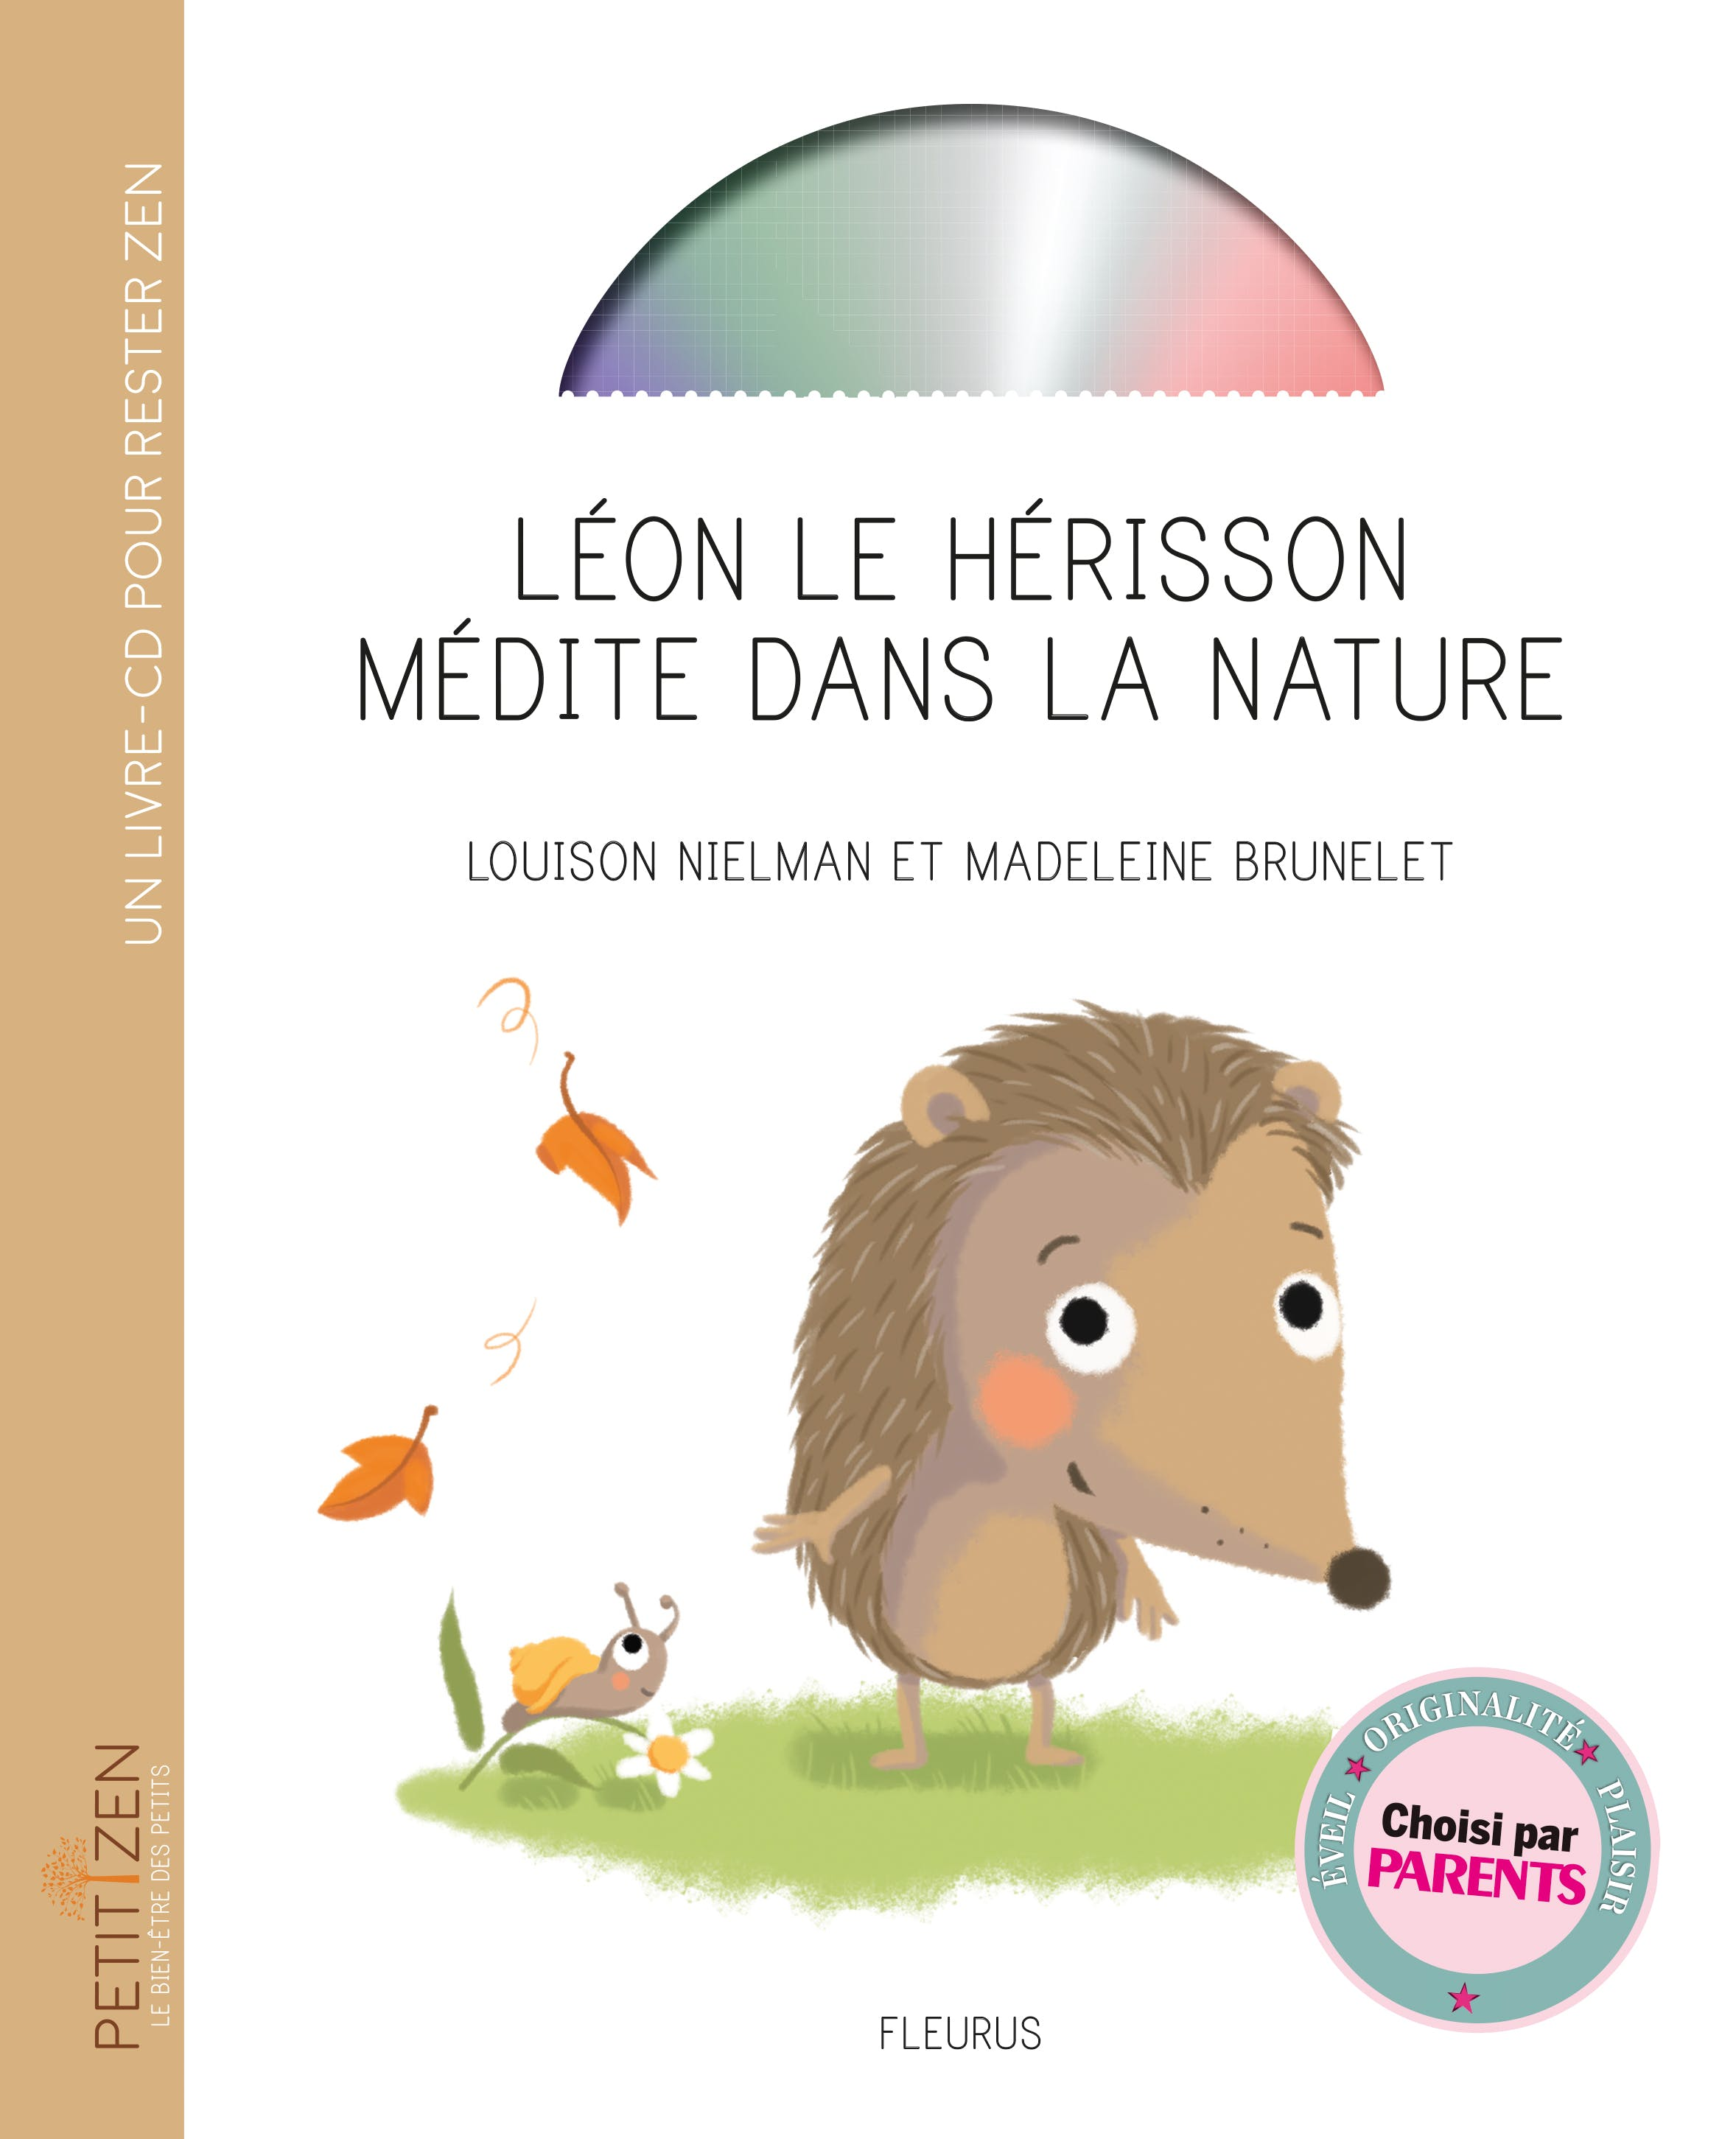 Leon Le Herisson Medite Dans La Nature De Fleurus Parents Fr